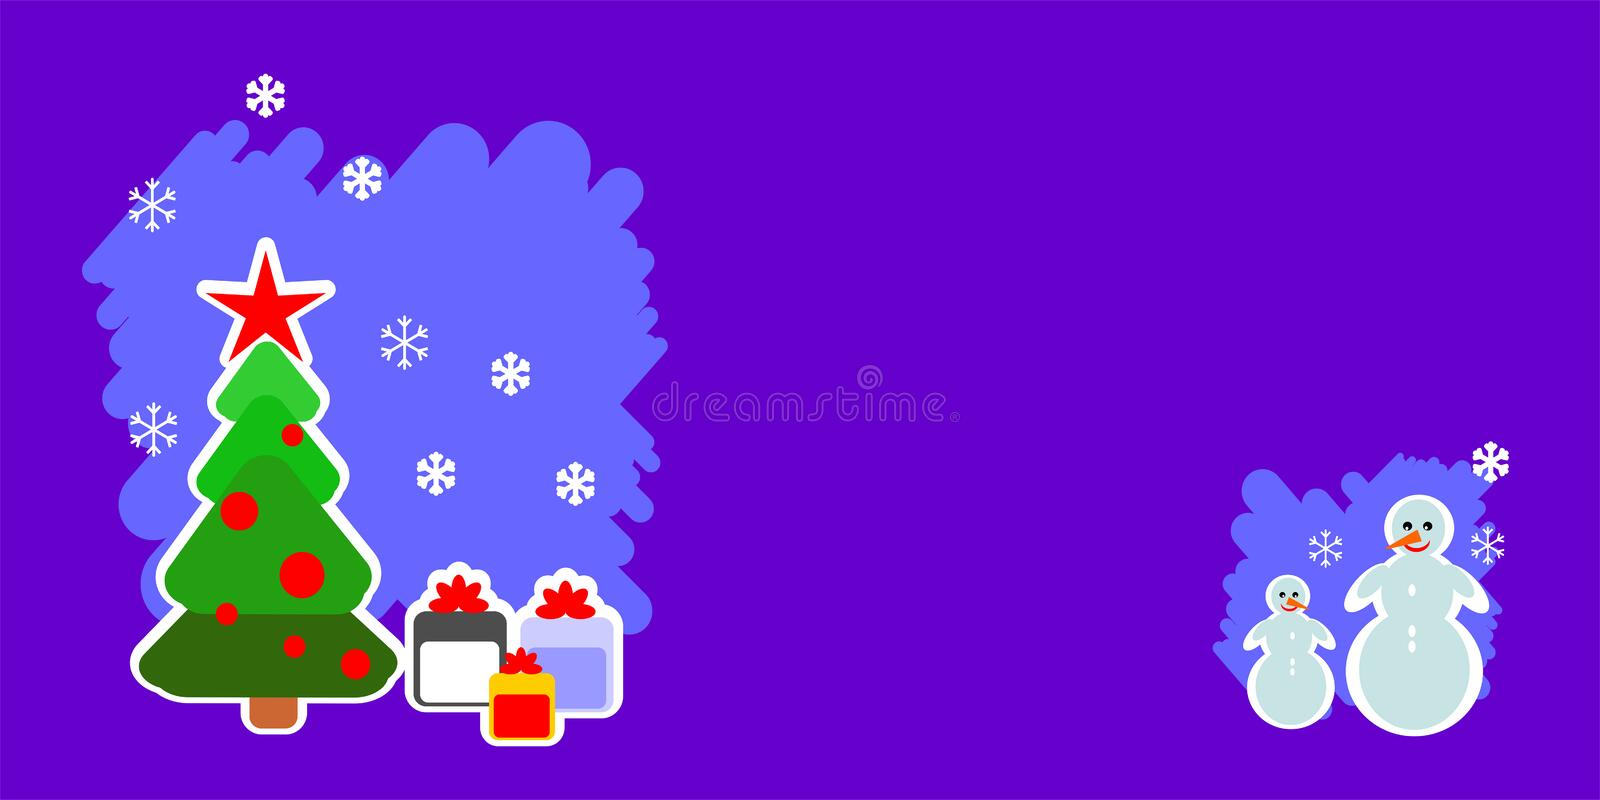 Merry christmas winter tree, new year tree, snowman, postcard, patterns design, new, 2019, banner, stock illustration